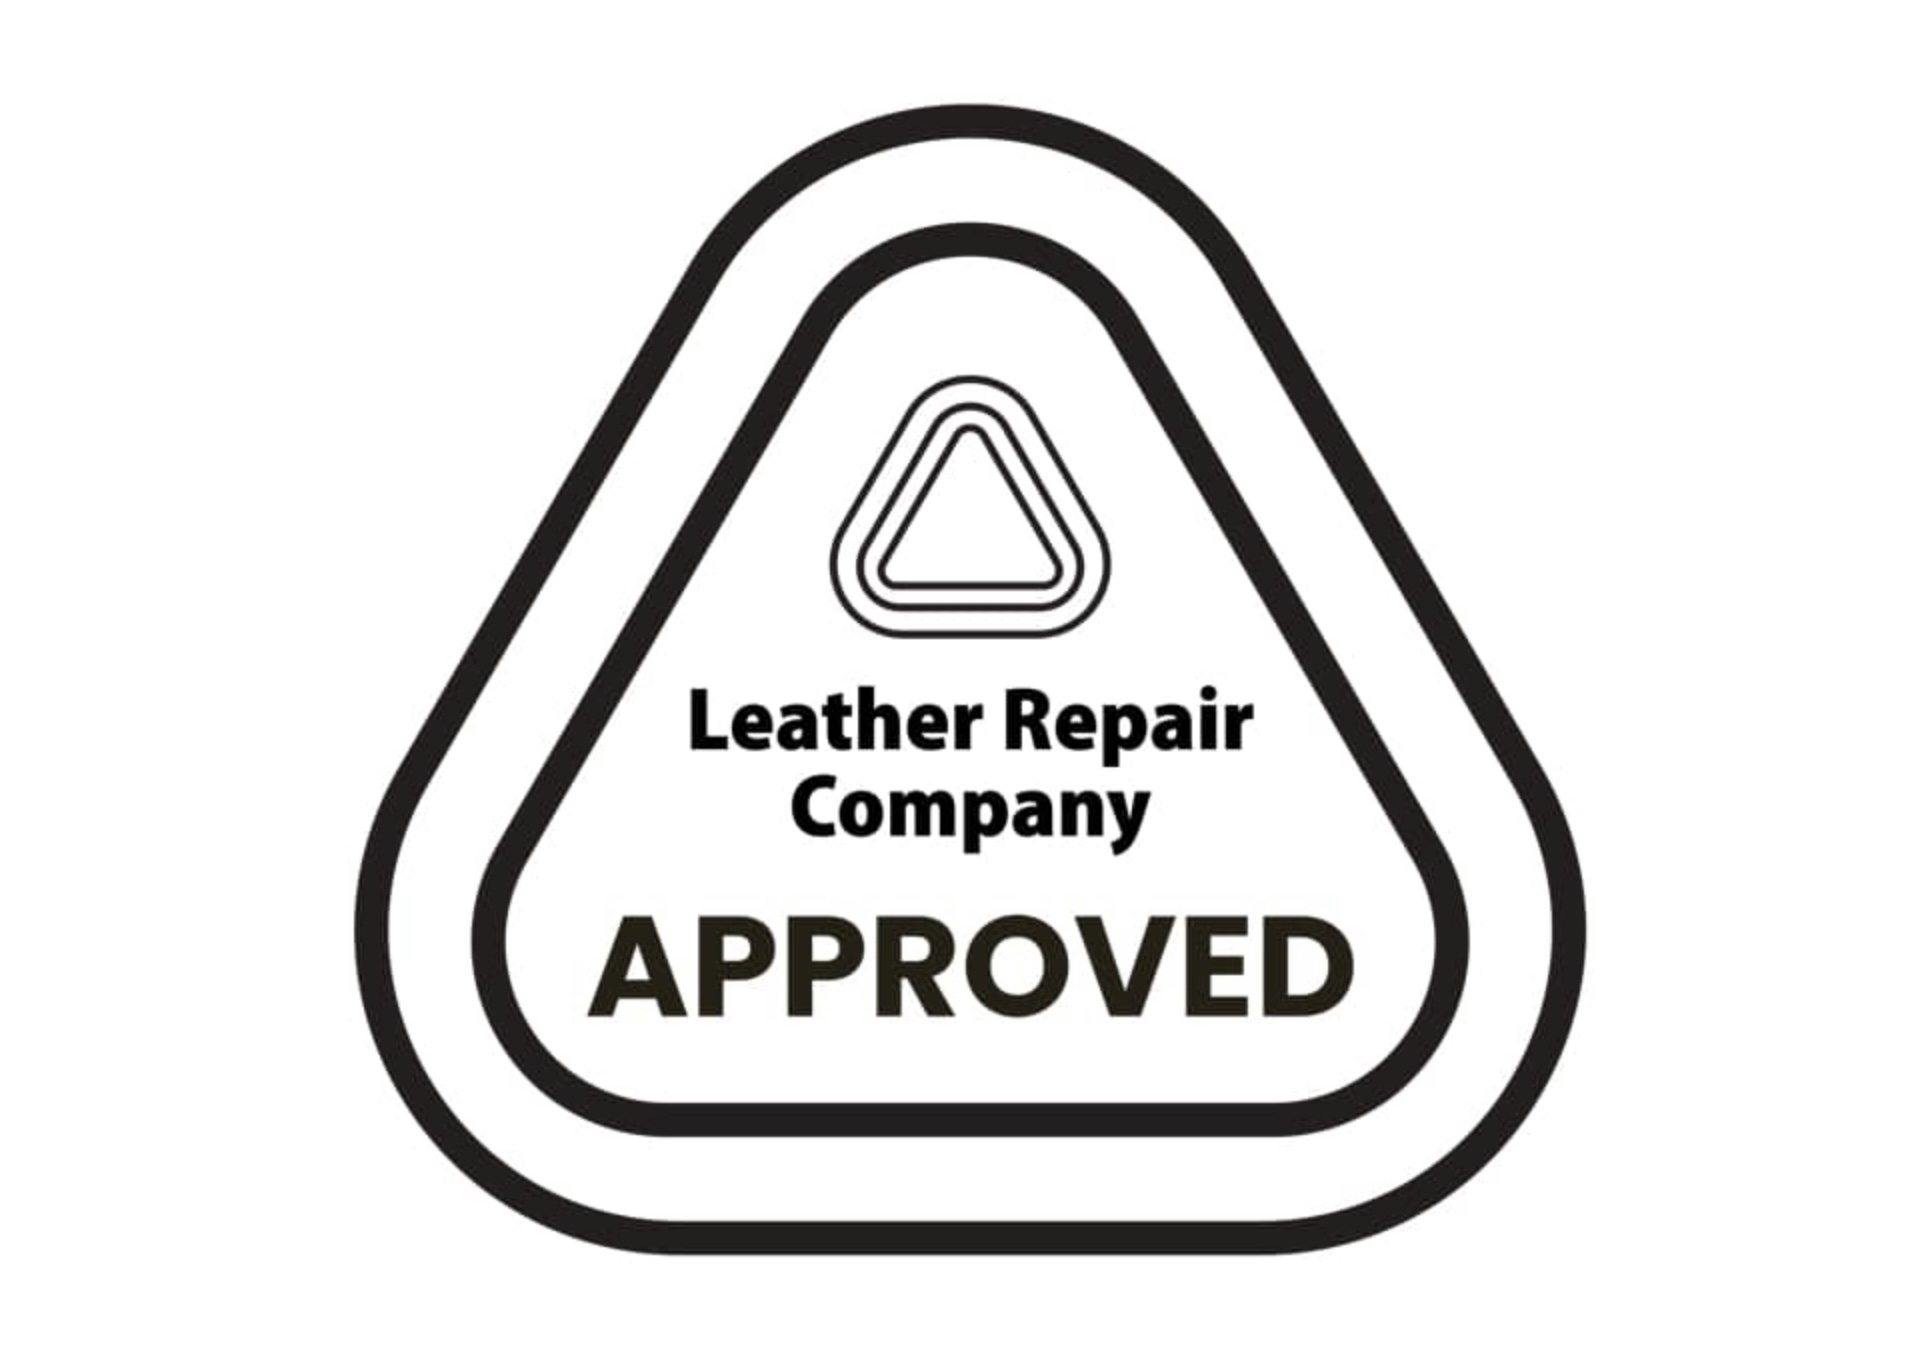 Leather Repair Company Approved logo